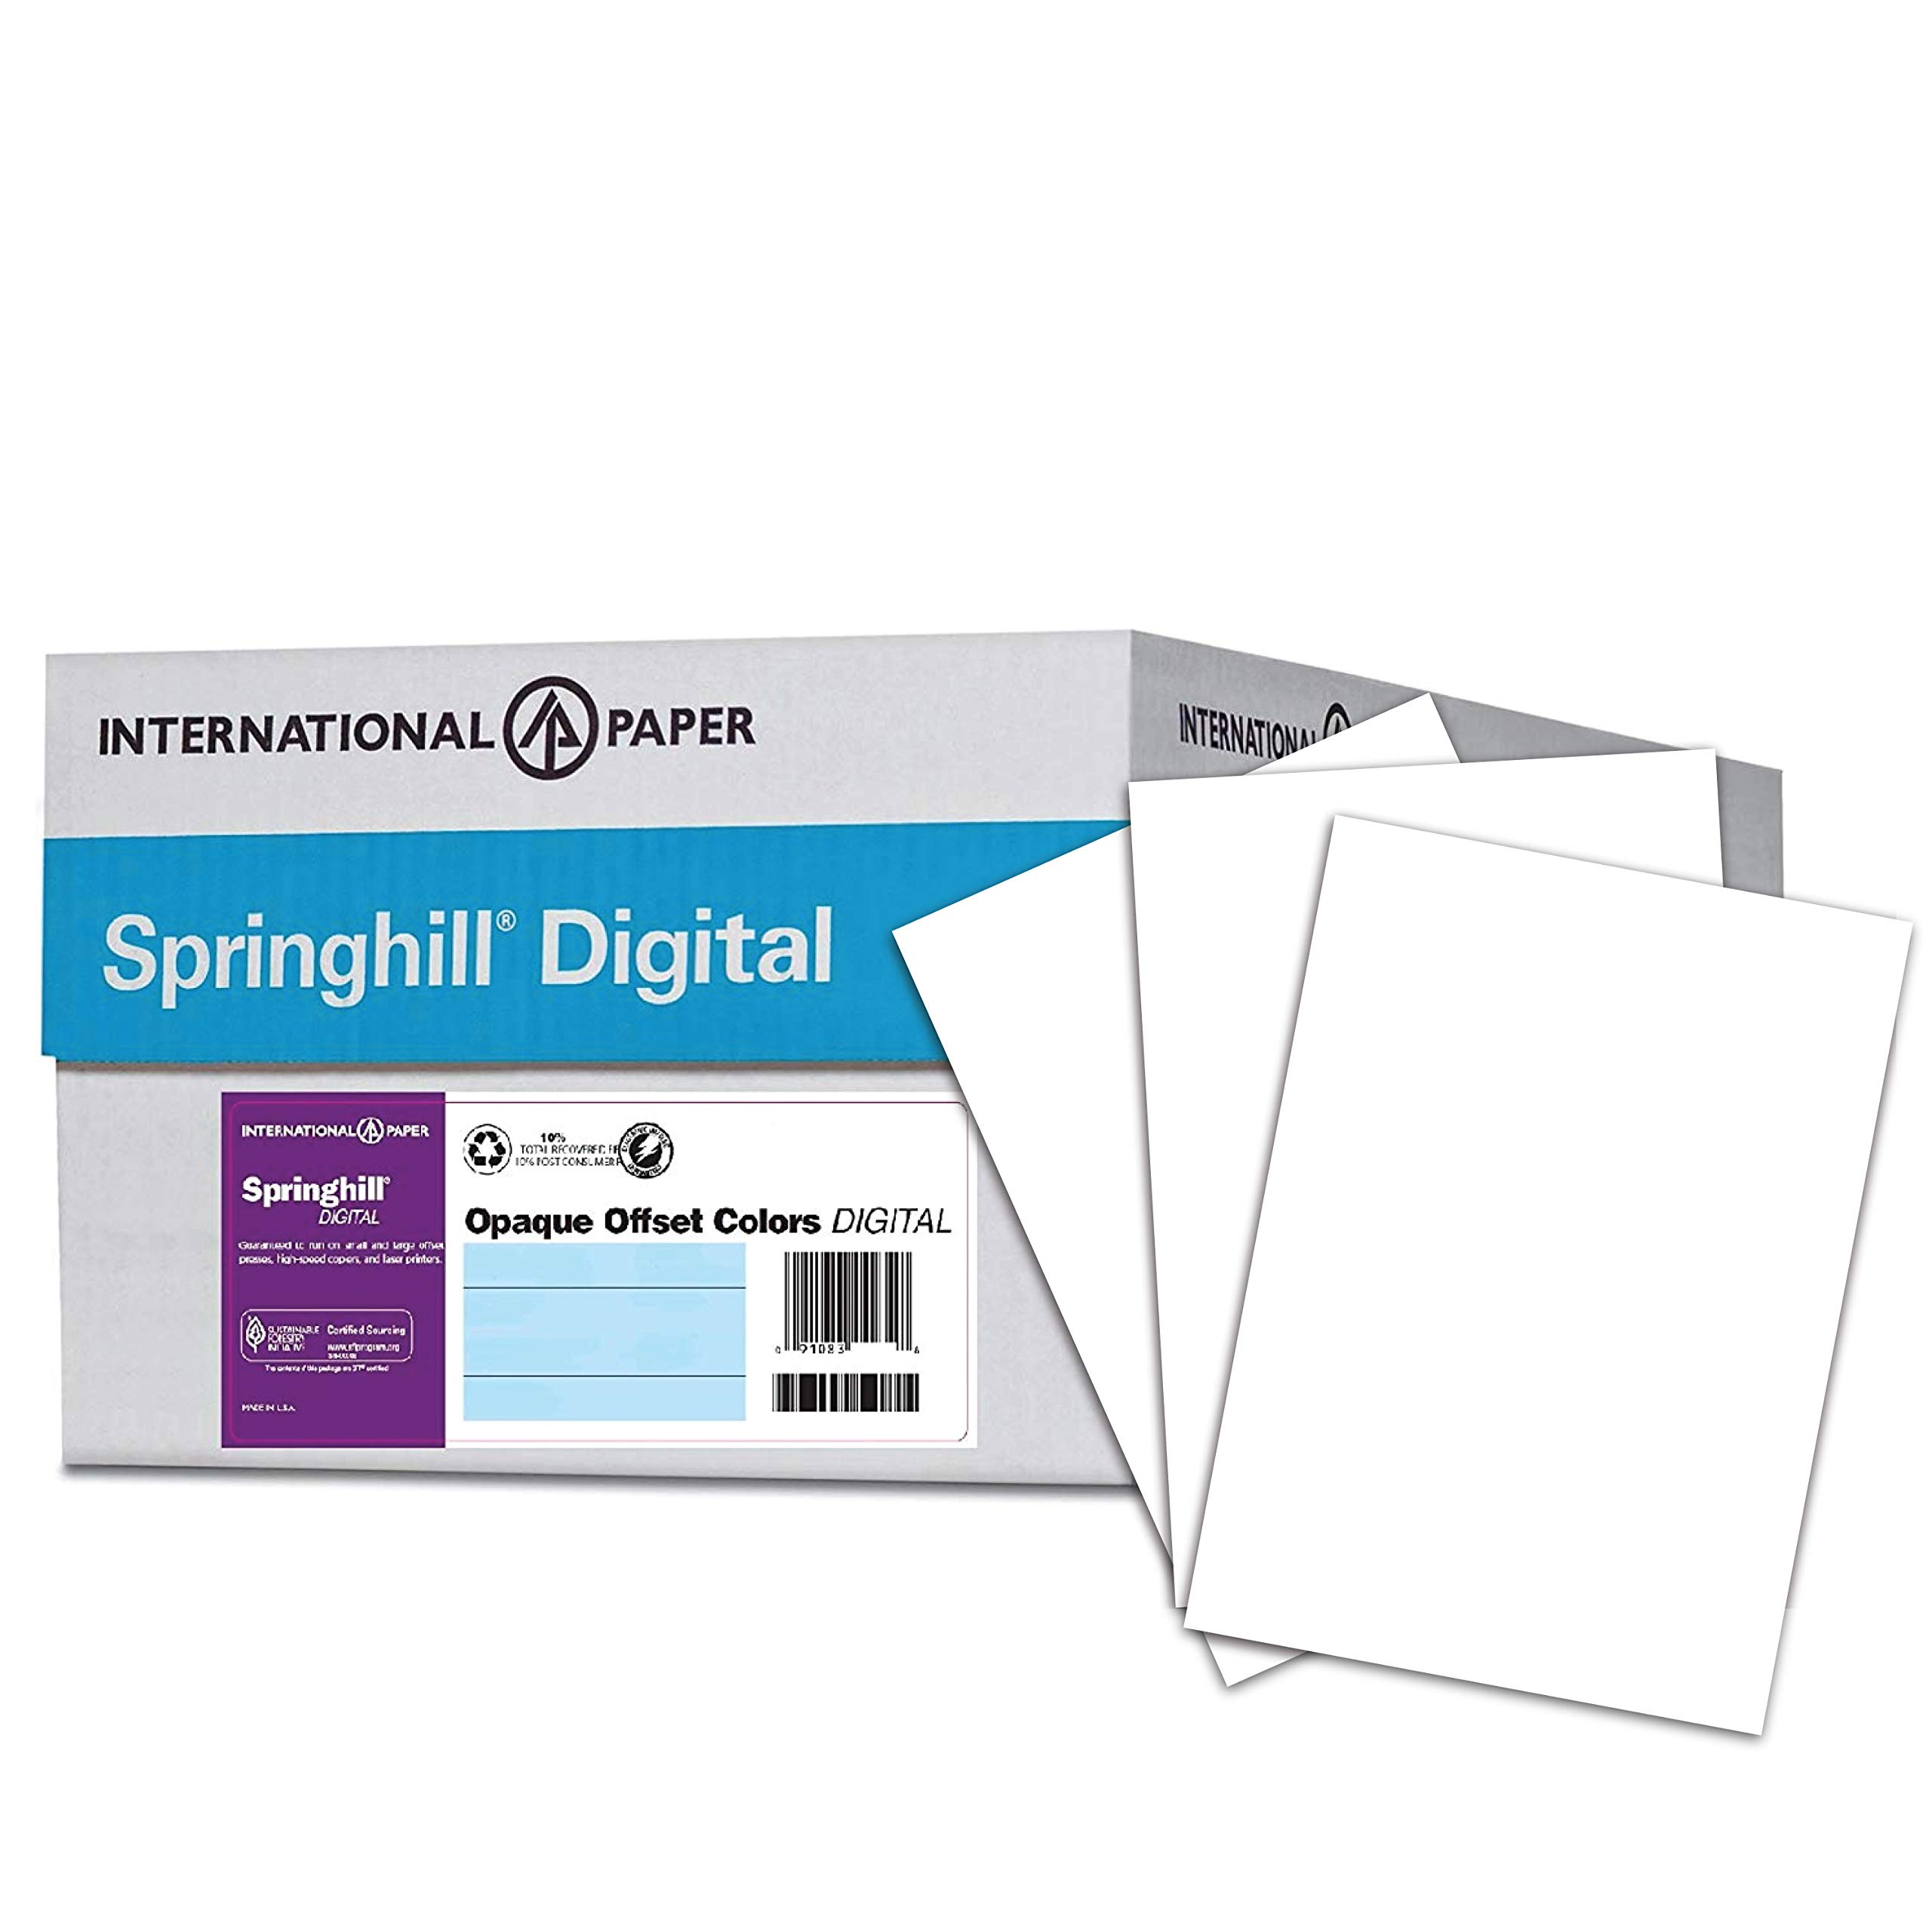 Springhill Cardstock Paper, White Paper, 80lb, 175gsm, 8.5 x 11, 92 Bright, 8 Reams / 2,000 Sheets - Vellum Card Stock, Thick Paper (016200R)